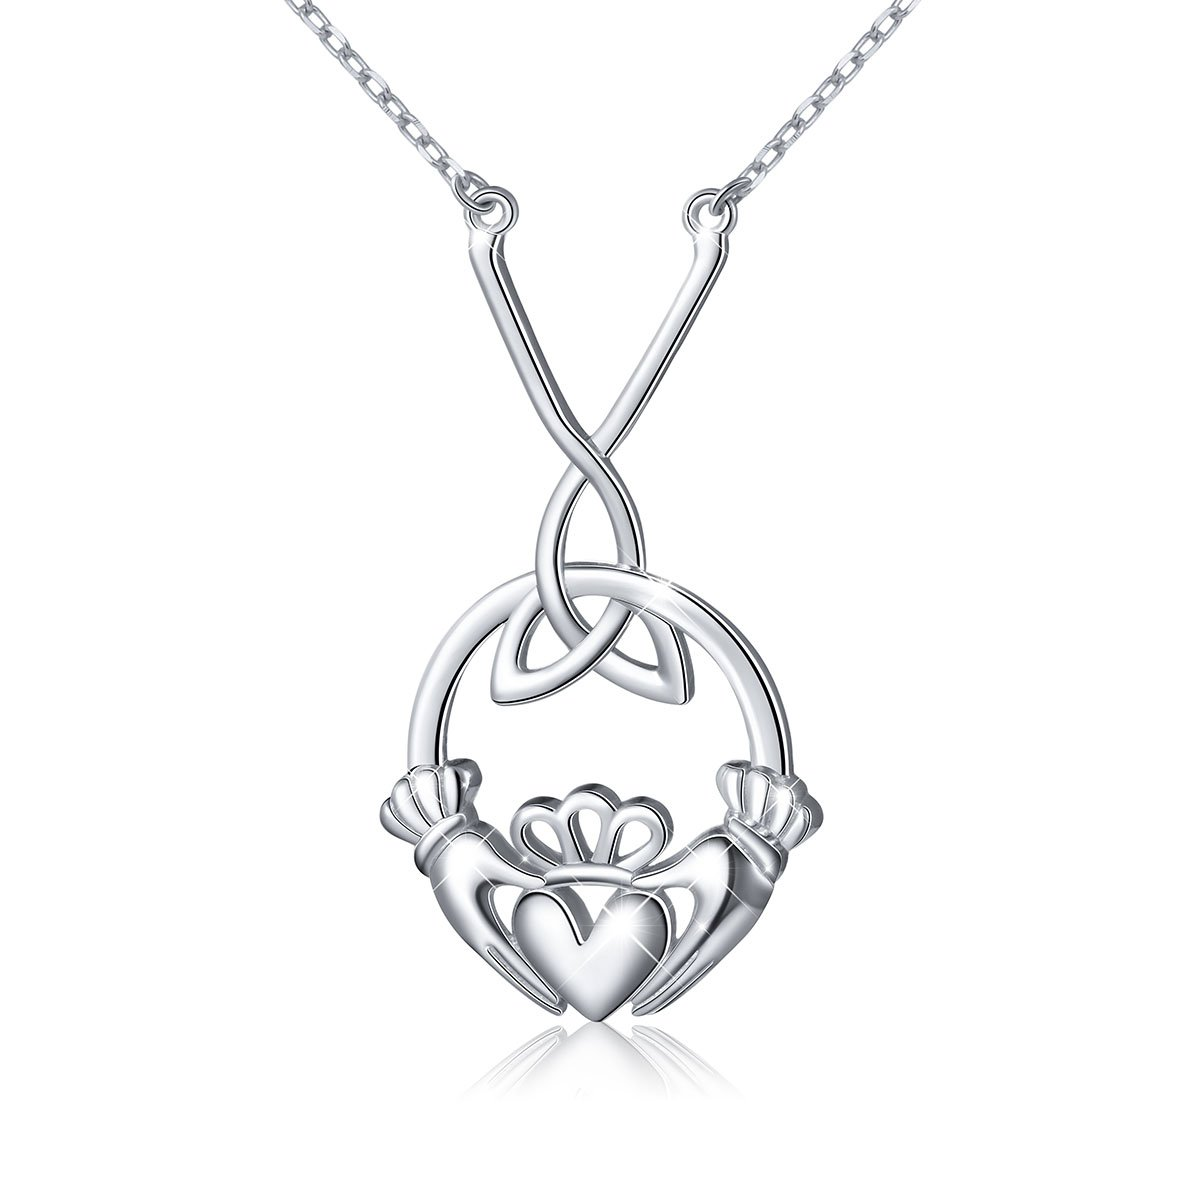 ATHENAA S925 Sterling Silver Celtic Love Kelly Hands Holding Crown Heart Claddagh Pendant Y Necklace